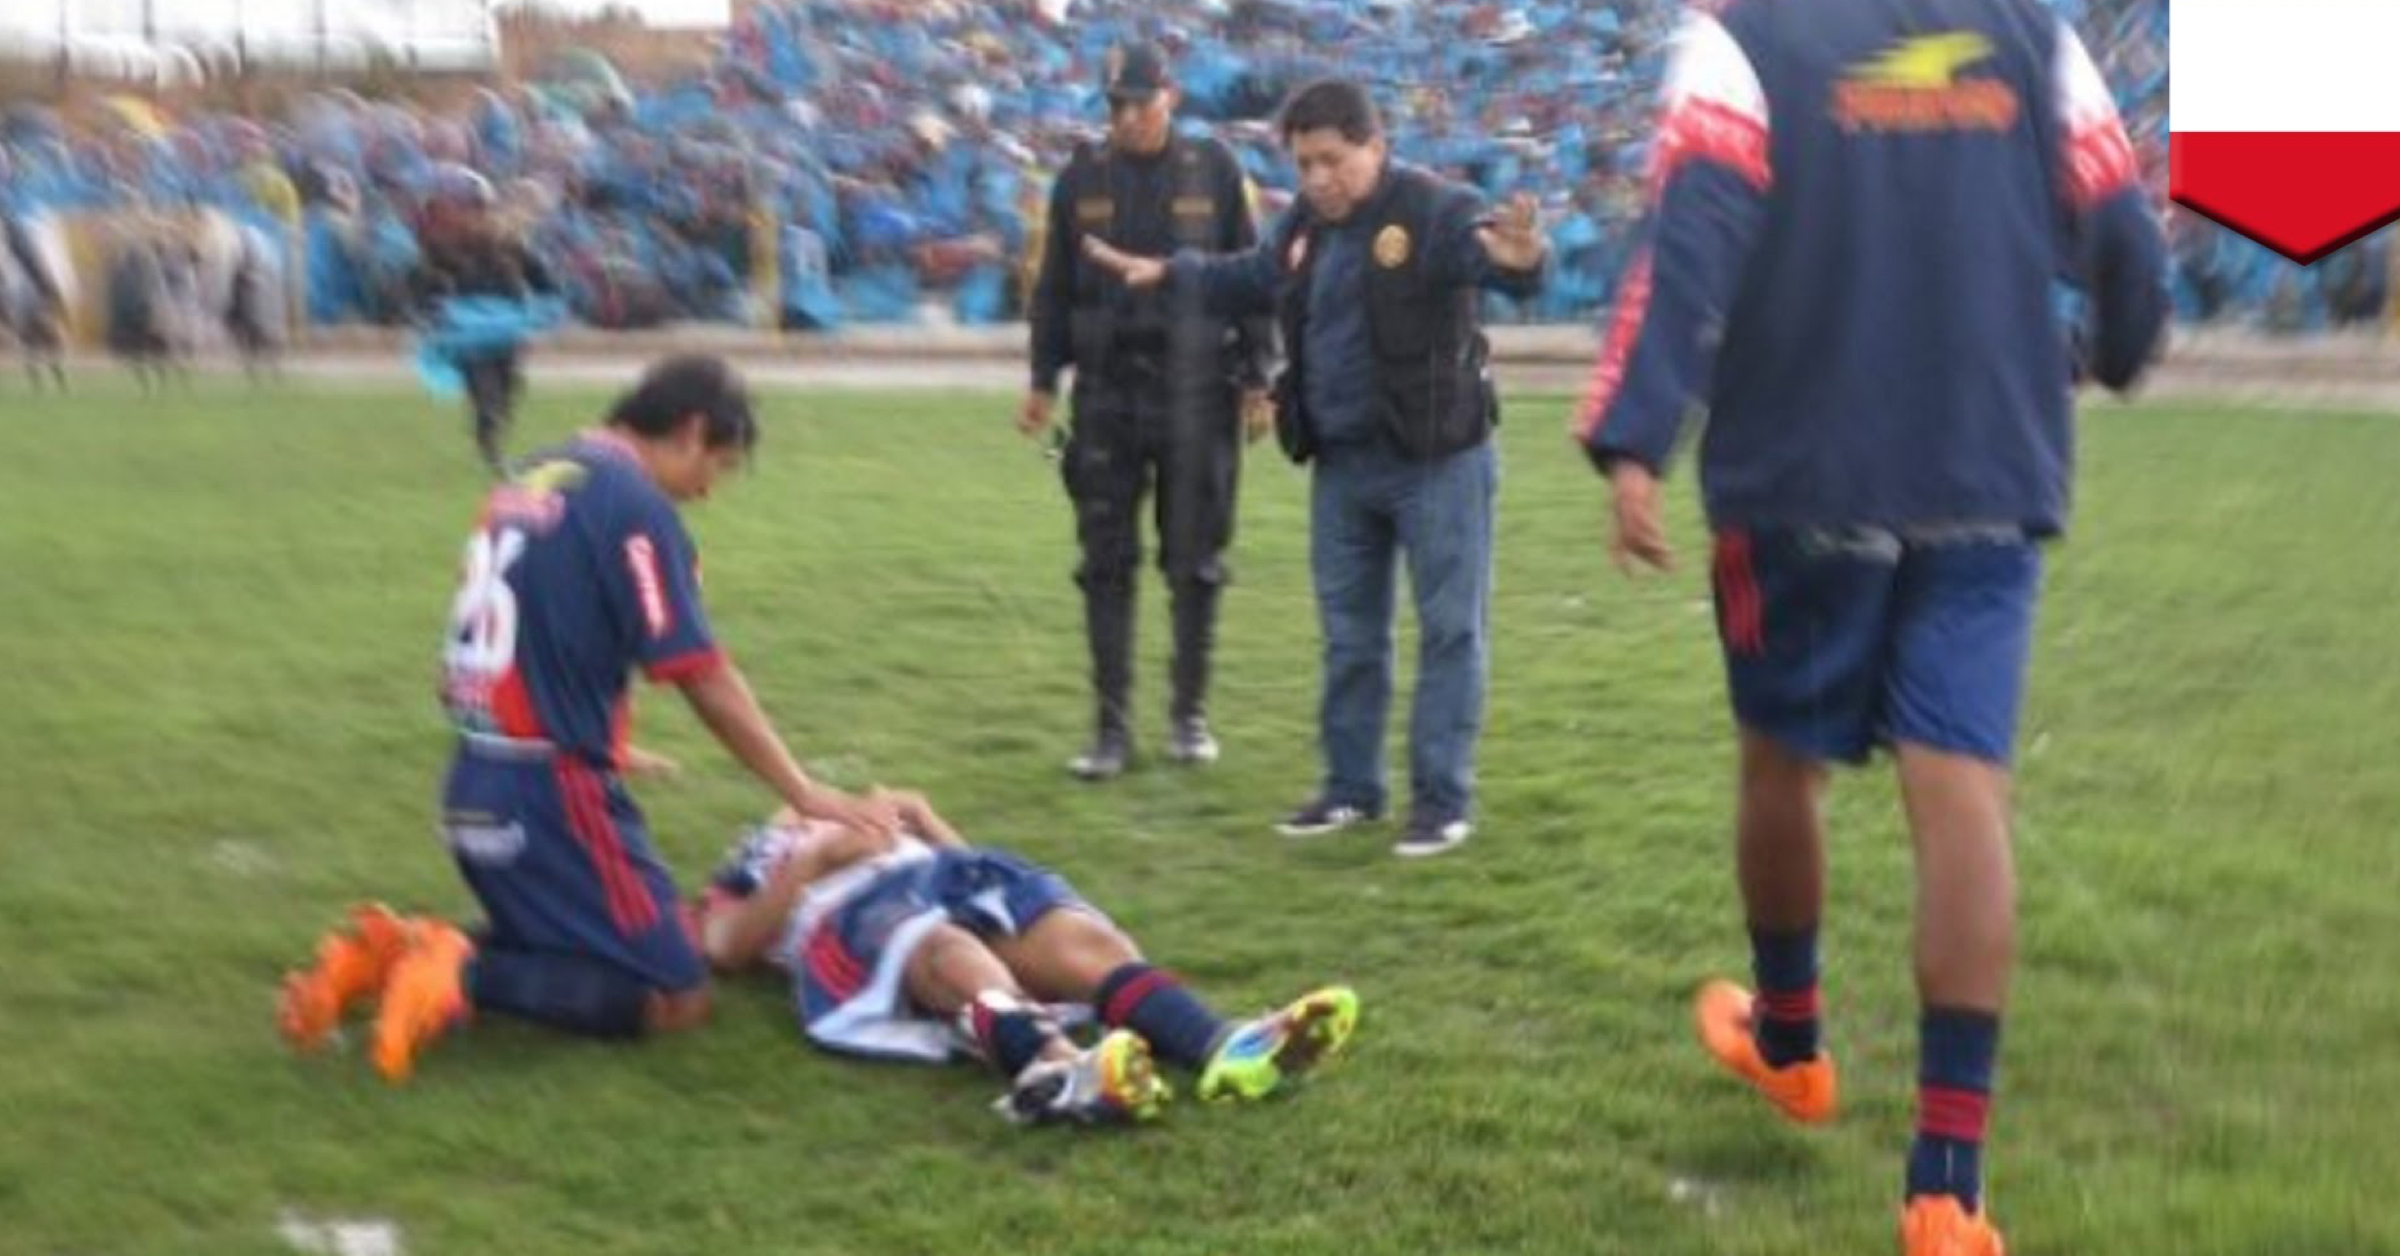 WATCH: Peruvian Football Player Survives Getting Struck By Lightning During Match